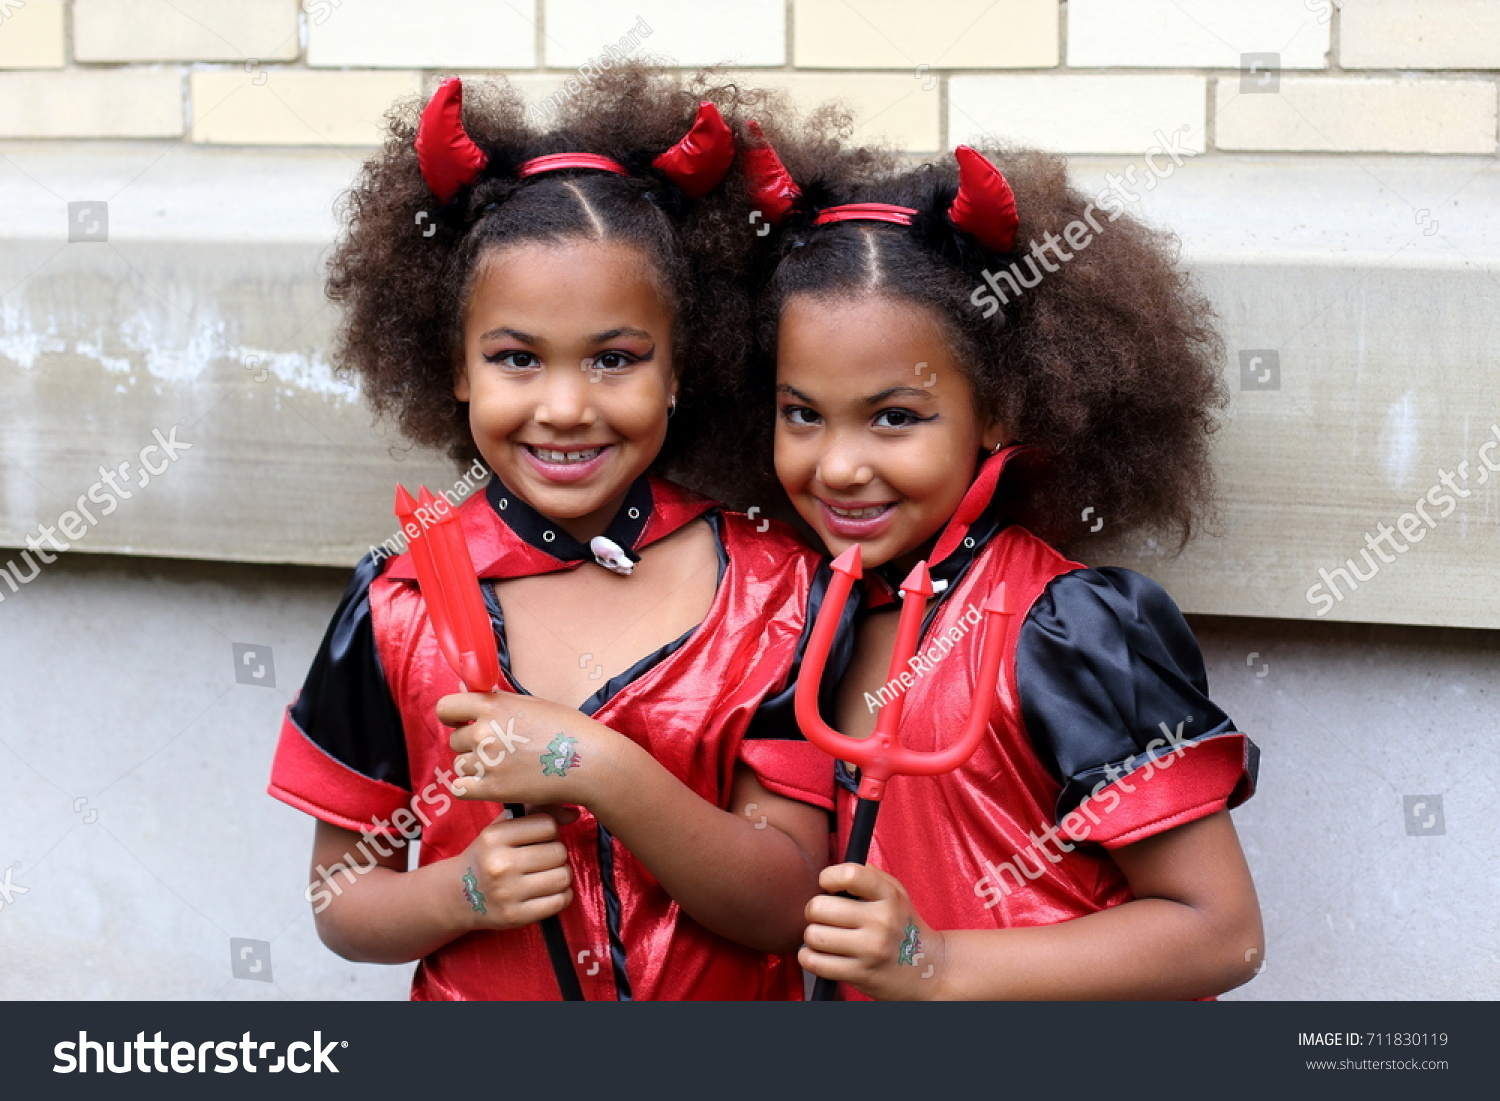 Identical african american girl twins disguised as devils to participate in the 2015 just for